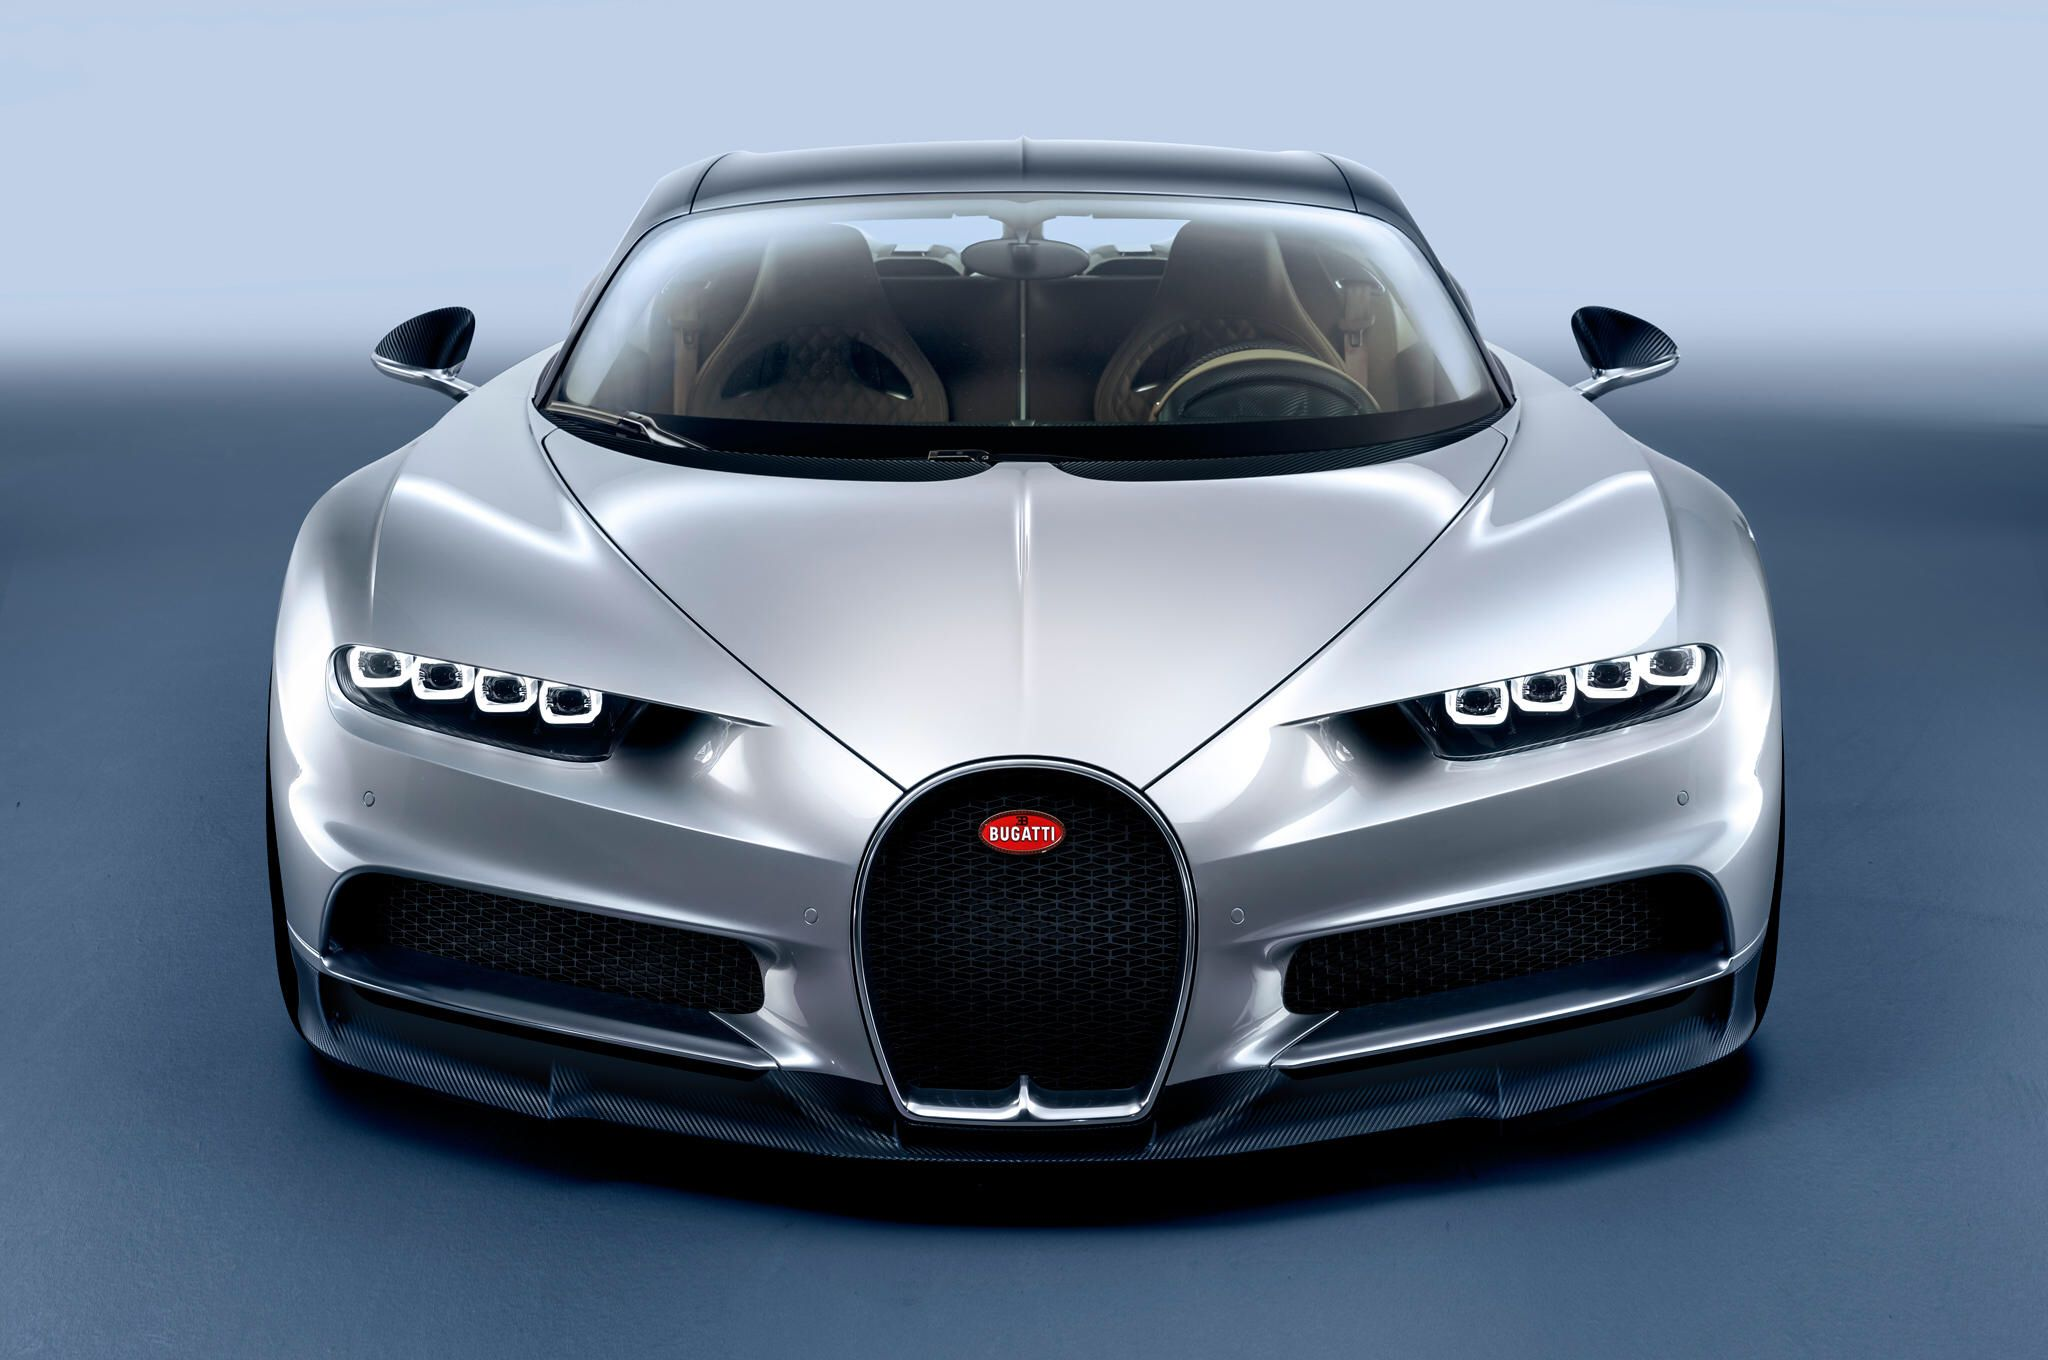 Bugatti Chiron By Design What S New And Why Bugatti Chiron Bugatti Super Cars